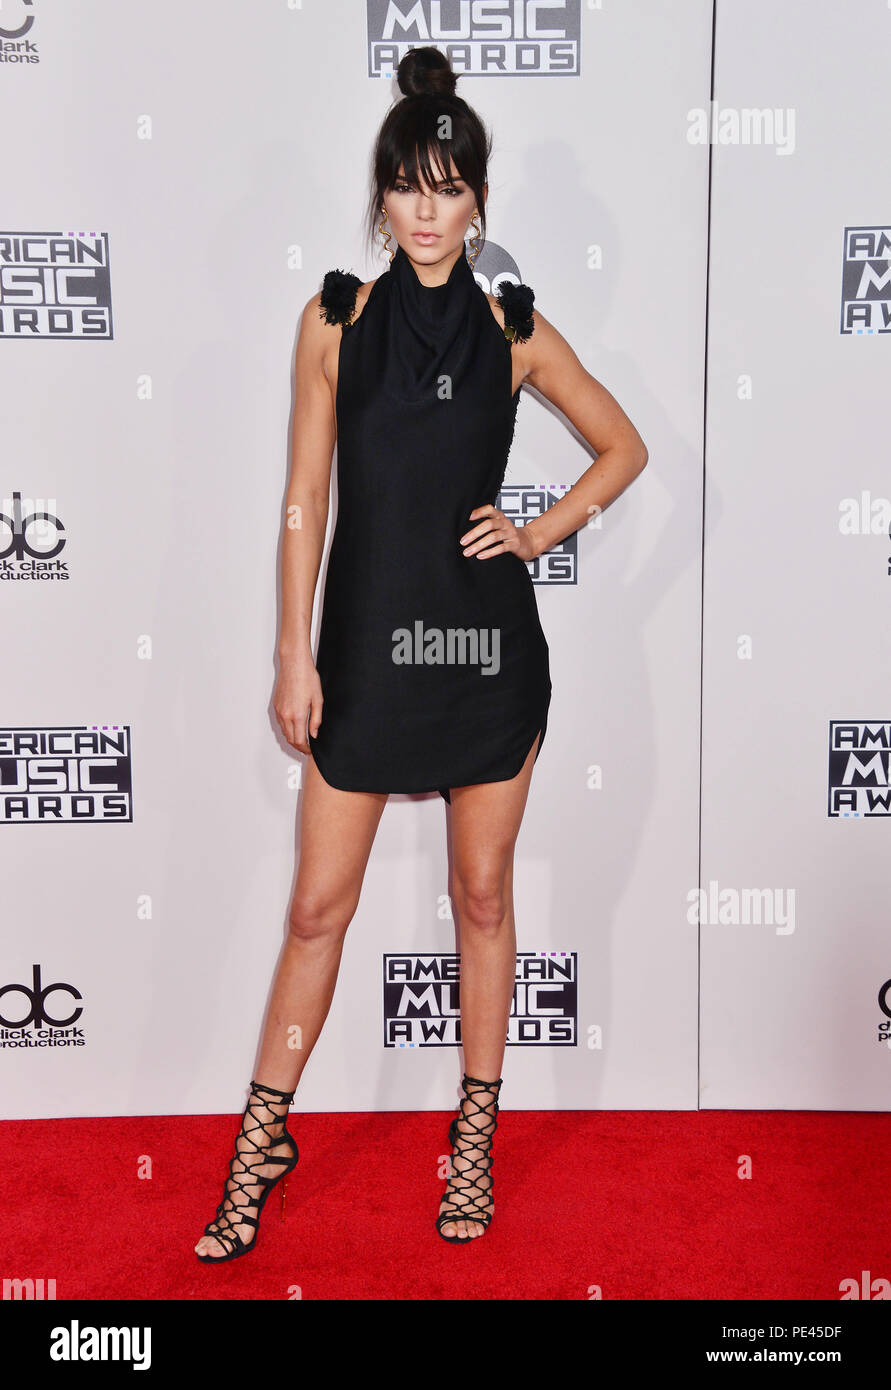 Kendall Jenner 303 at 2015 The American Music Awards at the Microsoft Theatre in Los Angeles. November 22, 2015.Kendall Jenner 303  Event in Hollywood Life - California, Red Carpet Event, USA, Film Industry, Celebrities, Photography, Bestof, Arts Culture and Entertainment, Topix Celebrities fashion, Best of, Hollywood Life, Event in Hollywood Life - California, Red Carpet and backstage, movie celebrities, TV celebrities, Music celebrities, Topix, Bestof, Arts Culture and Entertainment, vertical, one person, Photography,   Fashion, full length, 2015 inquiry tsuni@Gamma-USA.com , Credit Tsuni /  Stock Photo